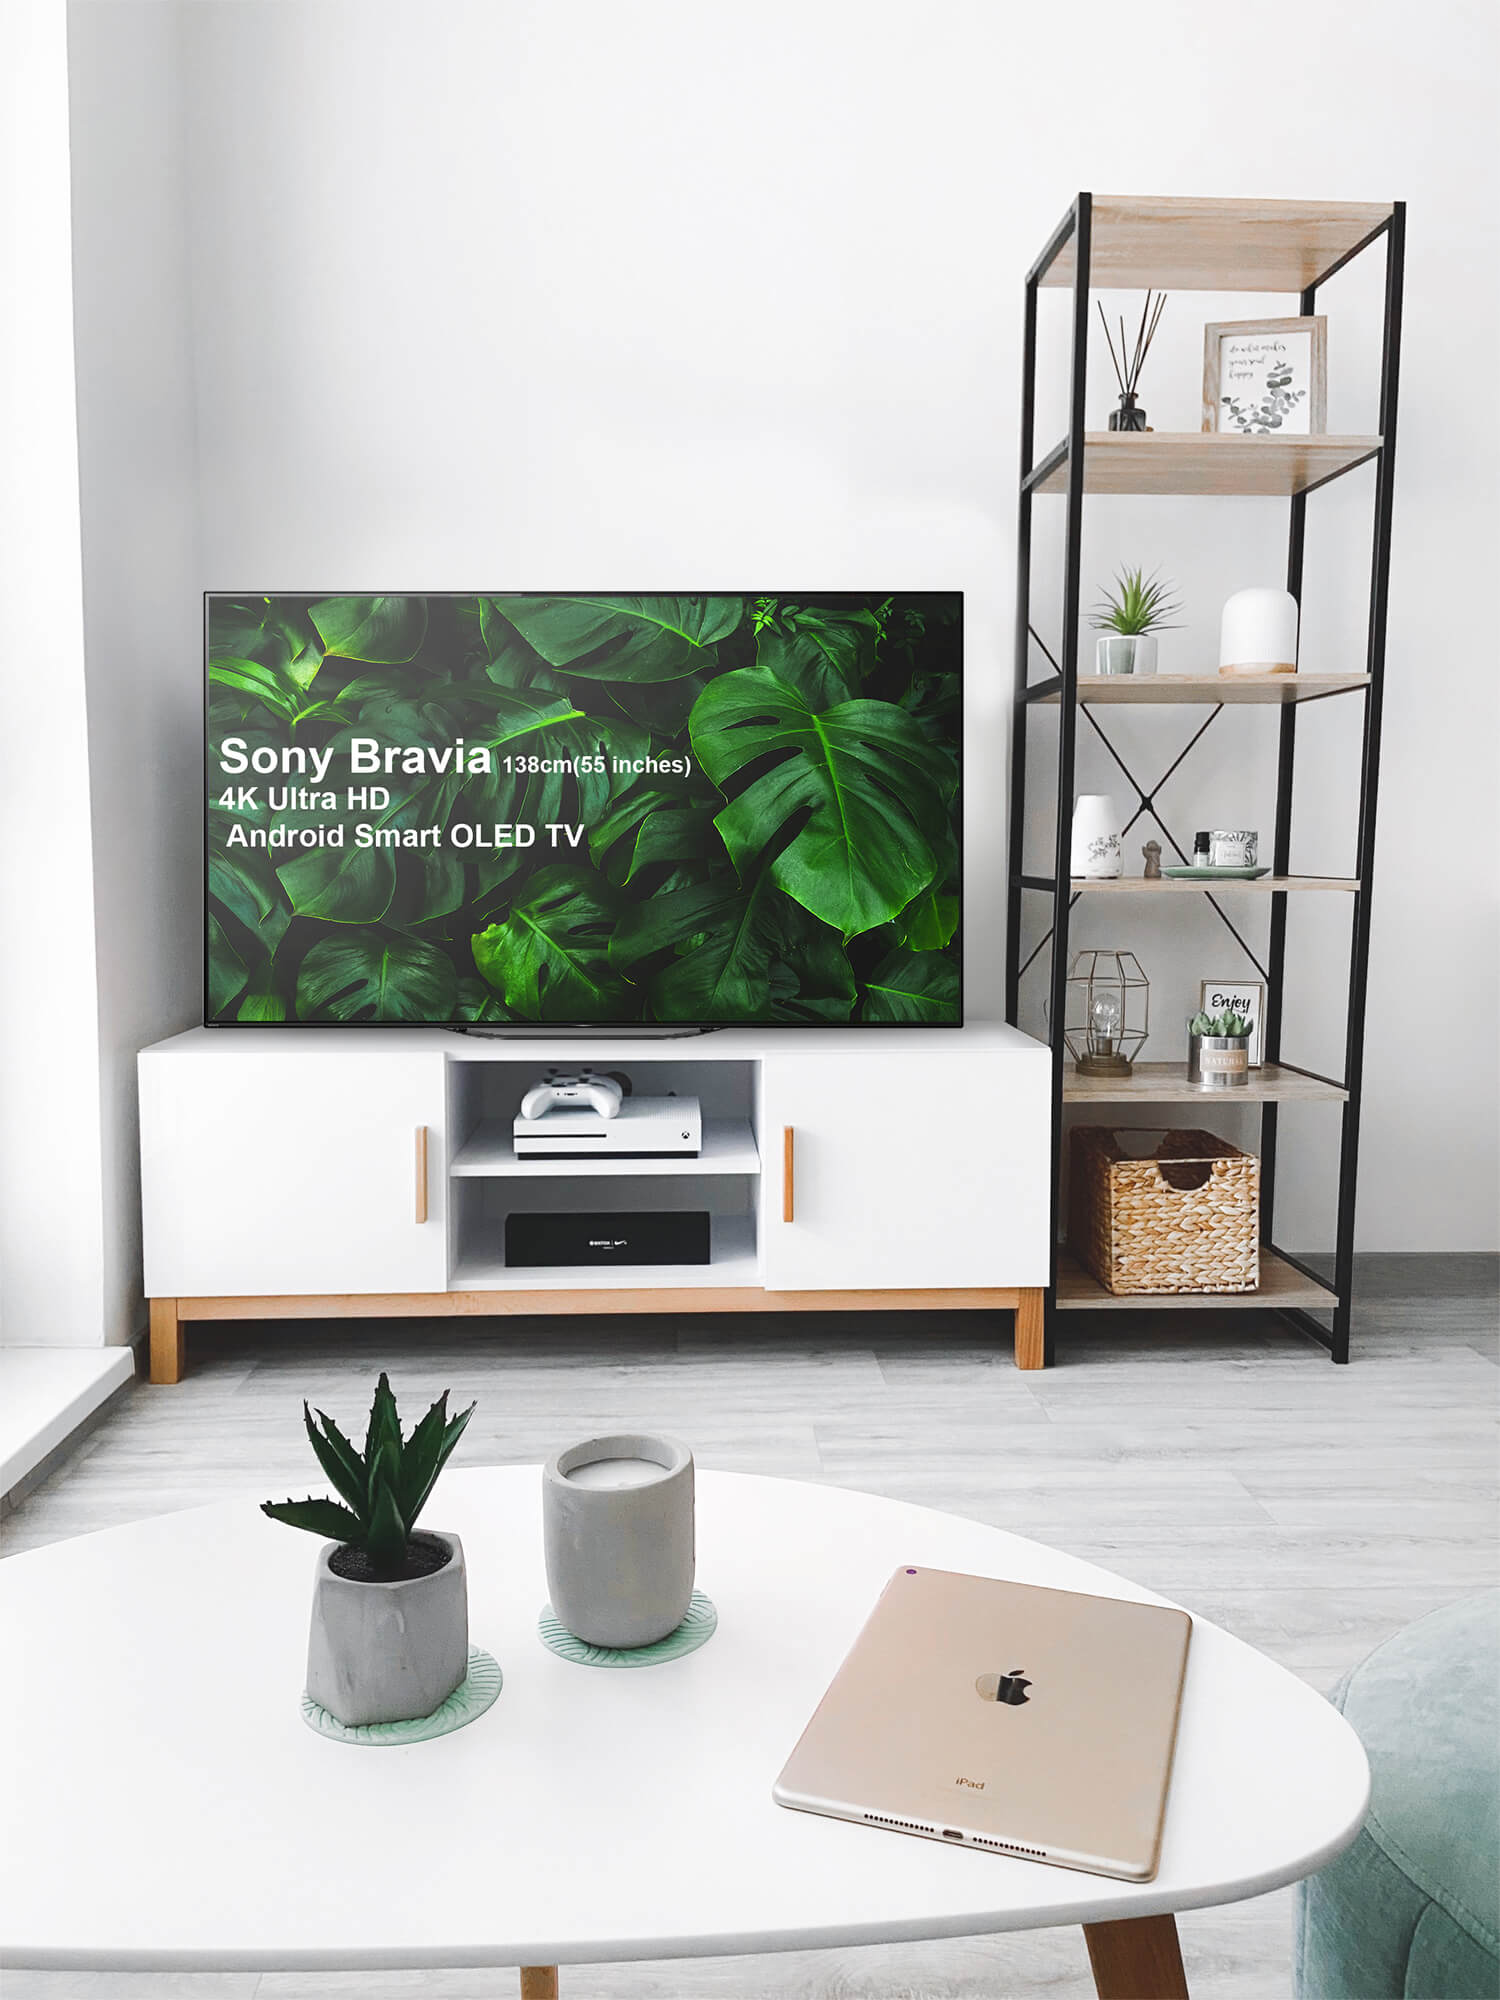 Free Sony Bravia 4K Ultra HD Smart OLED TV Mockup PSD Template